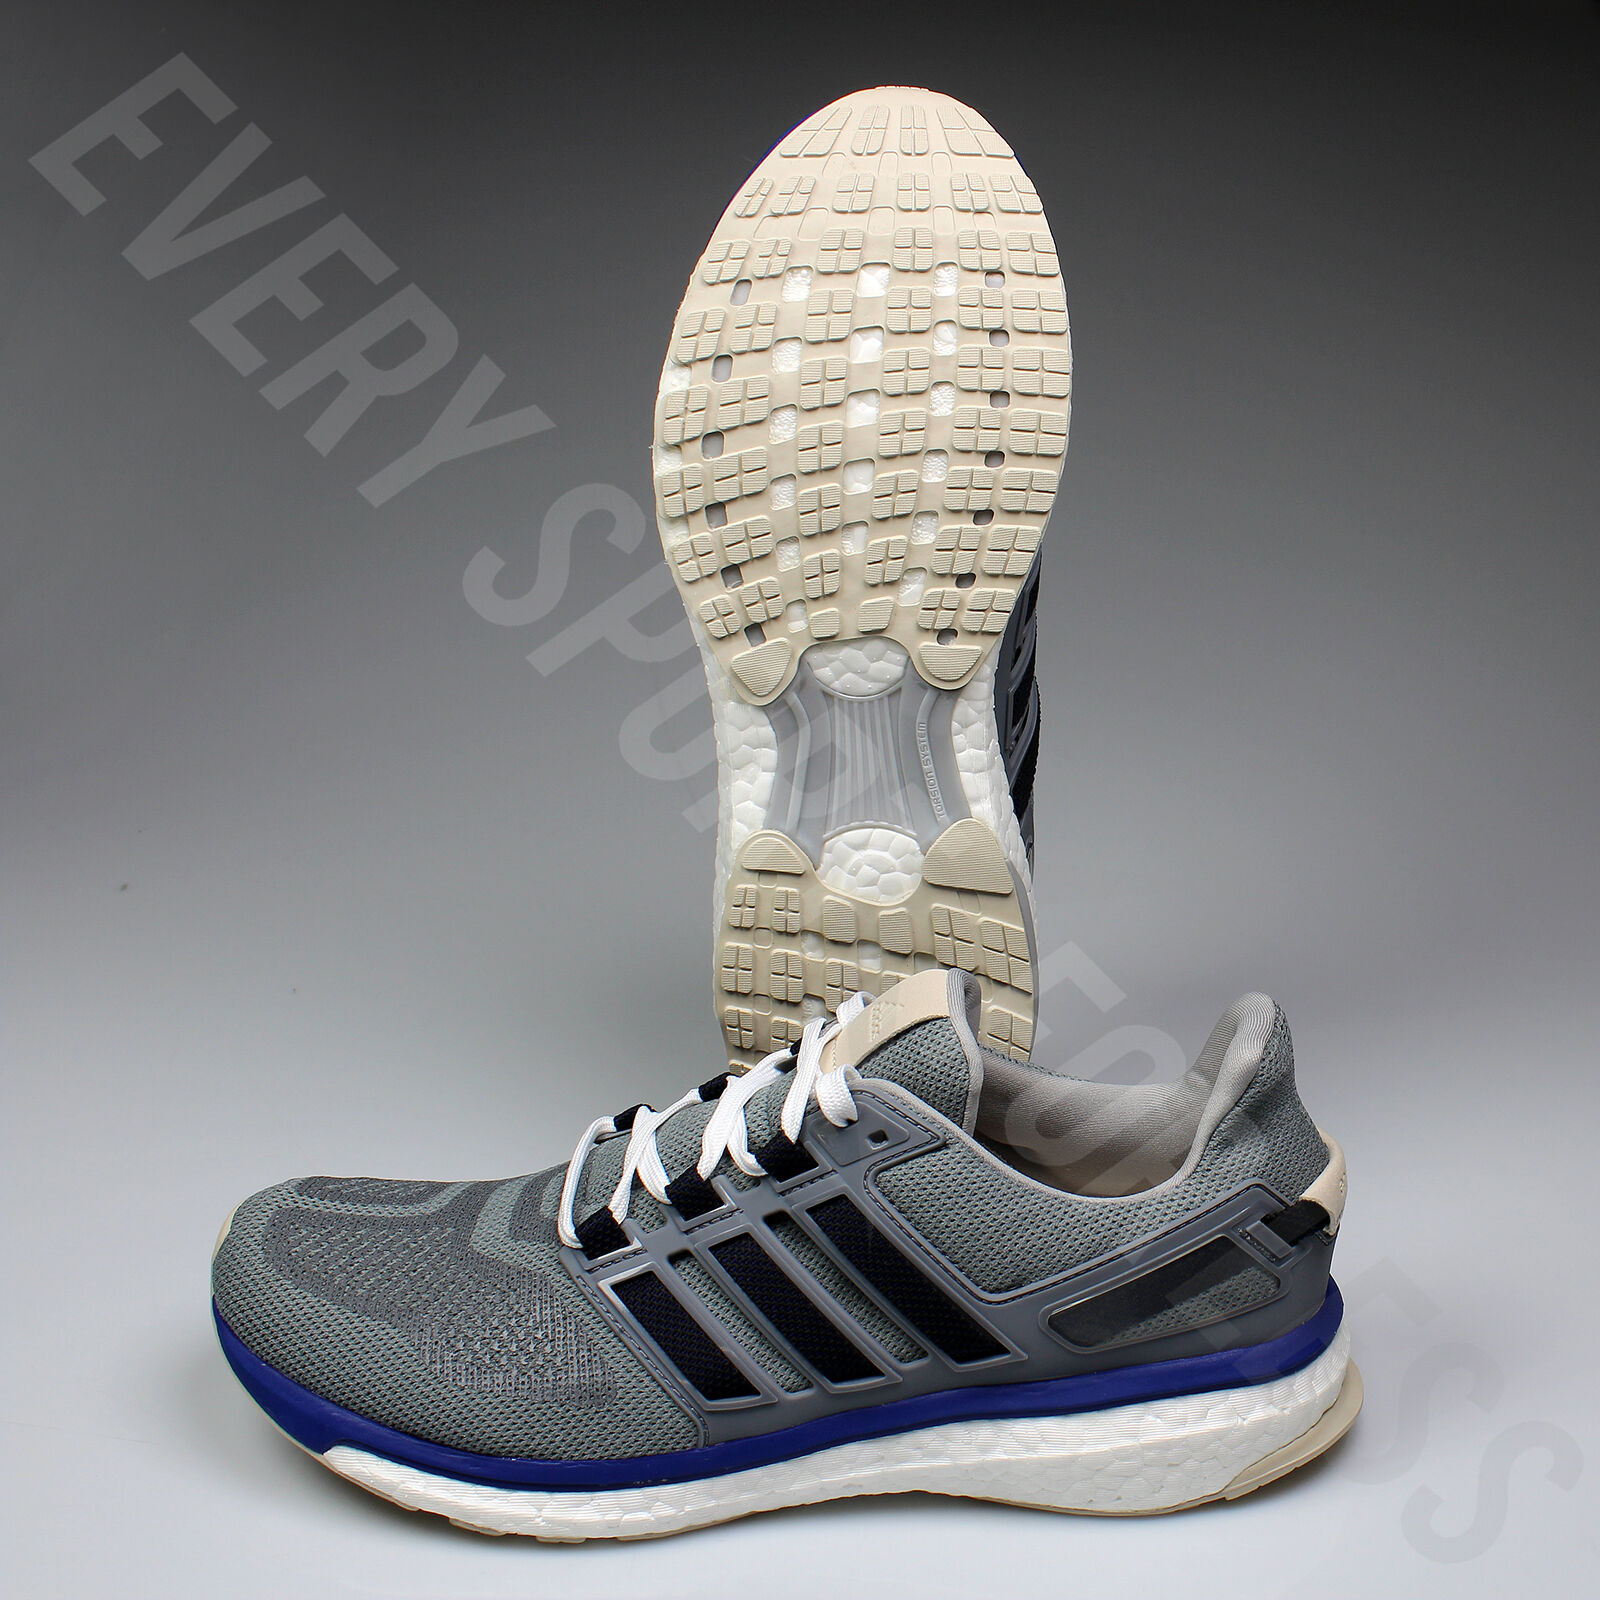 Adidas Energy Boost 3 m AQ5958 Mens Running Shoes / Sneakers Price reduction List @ Price reduction Cheap women's shoes women's shoes